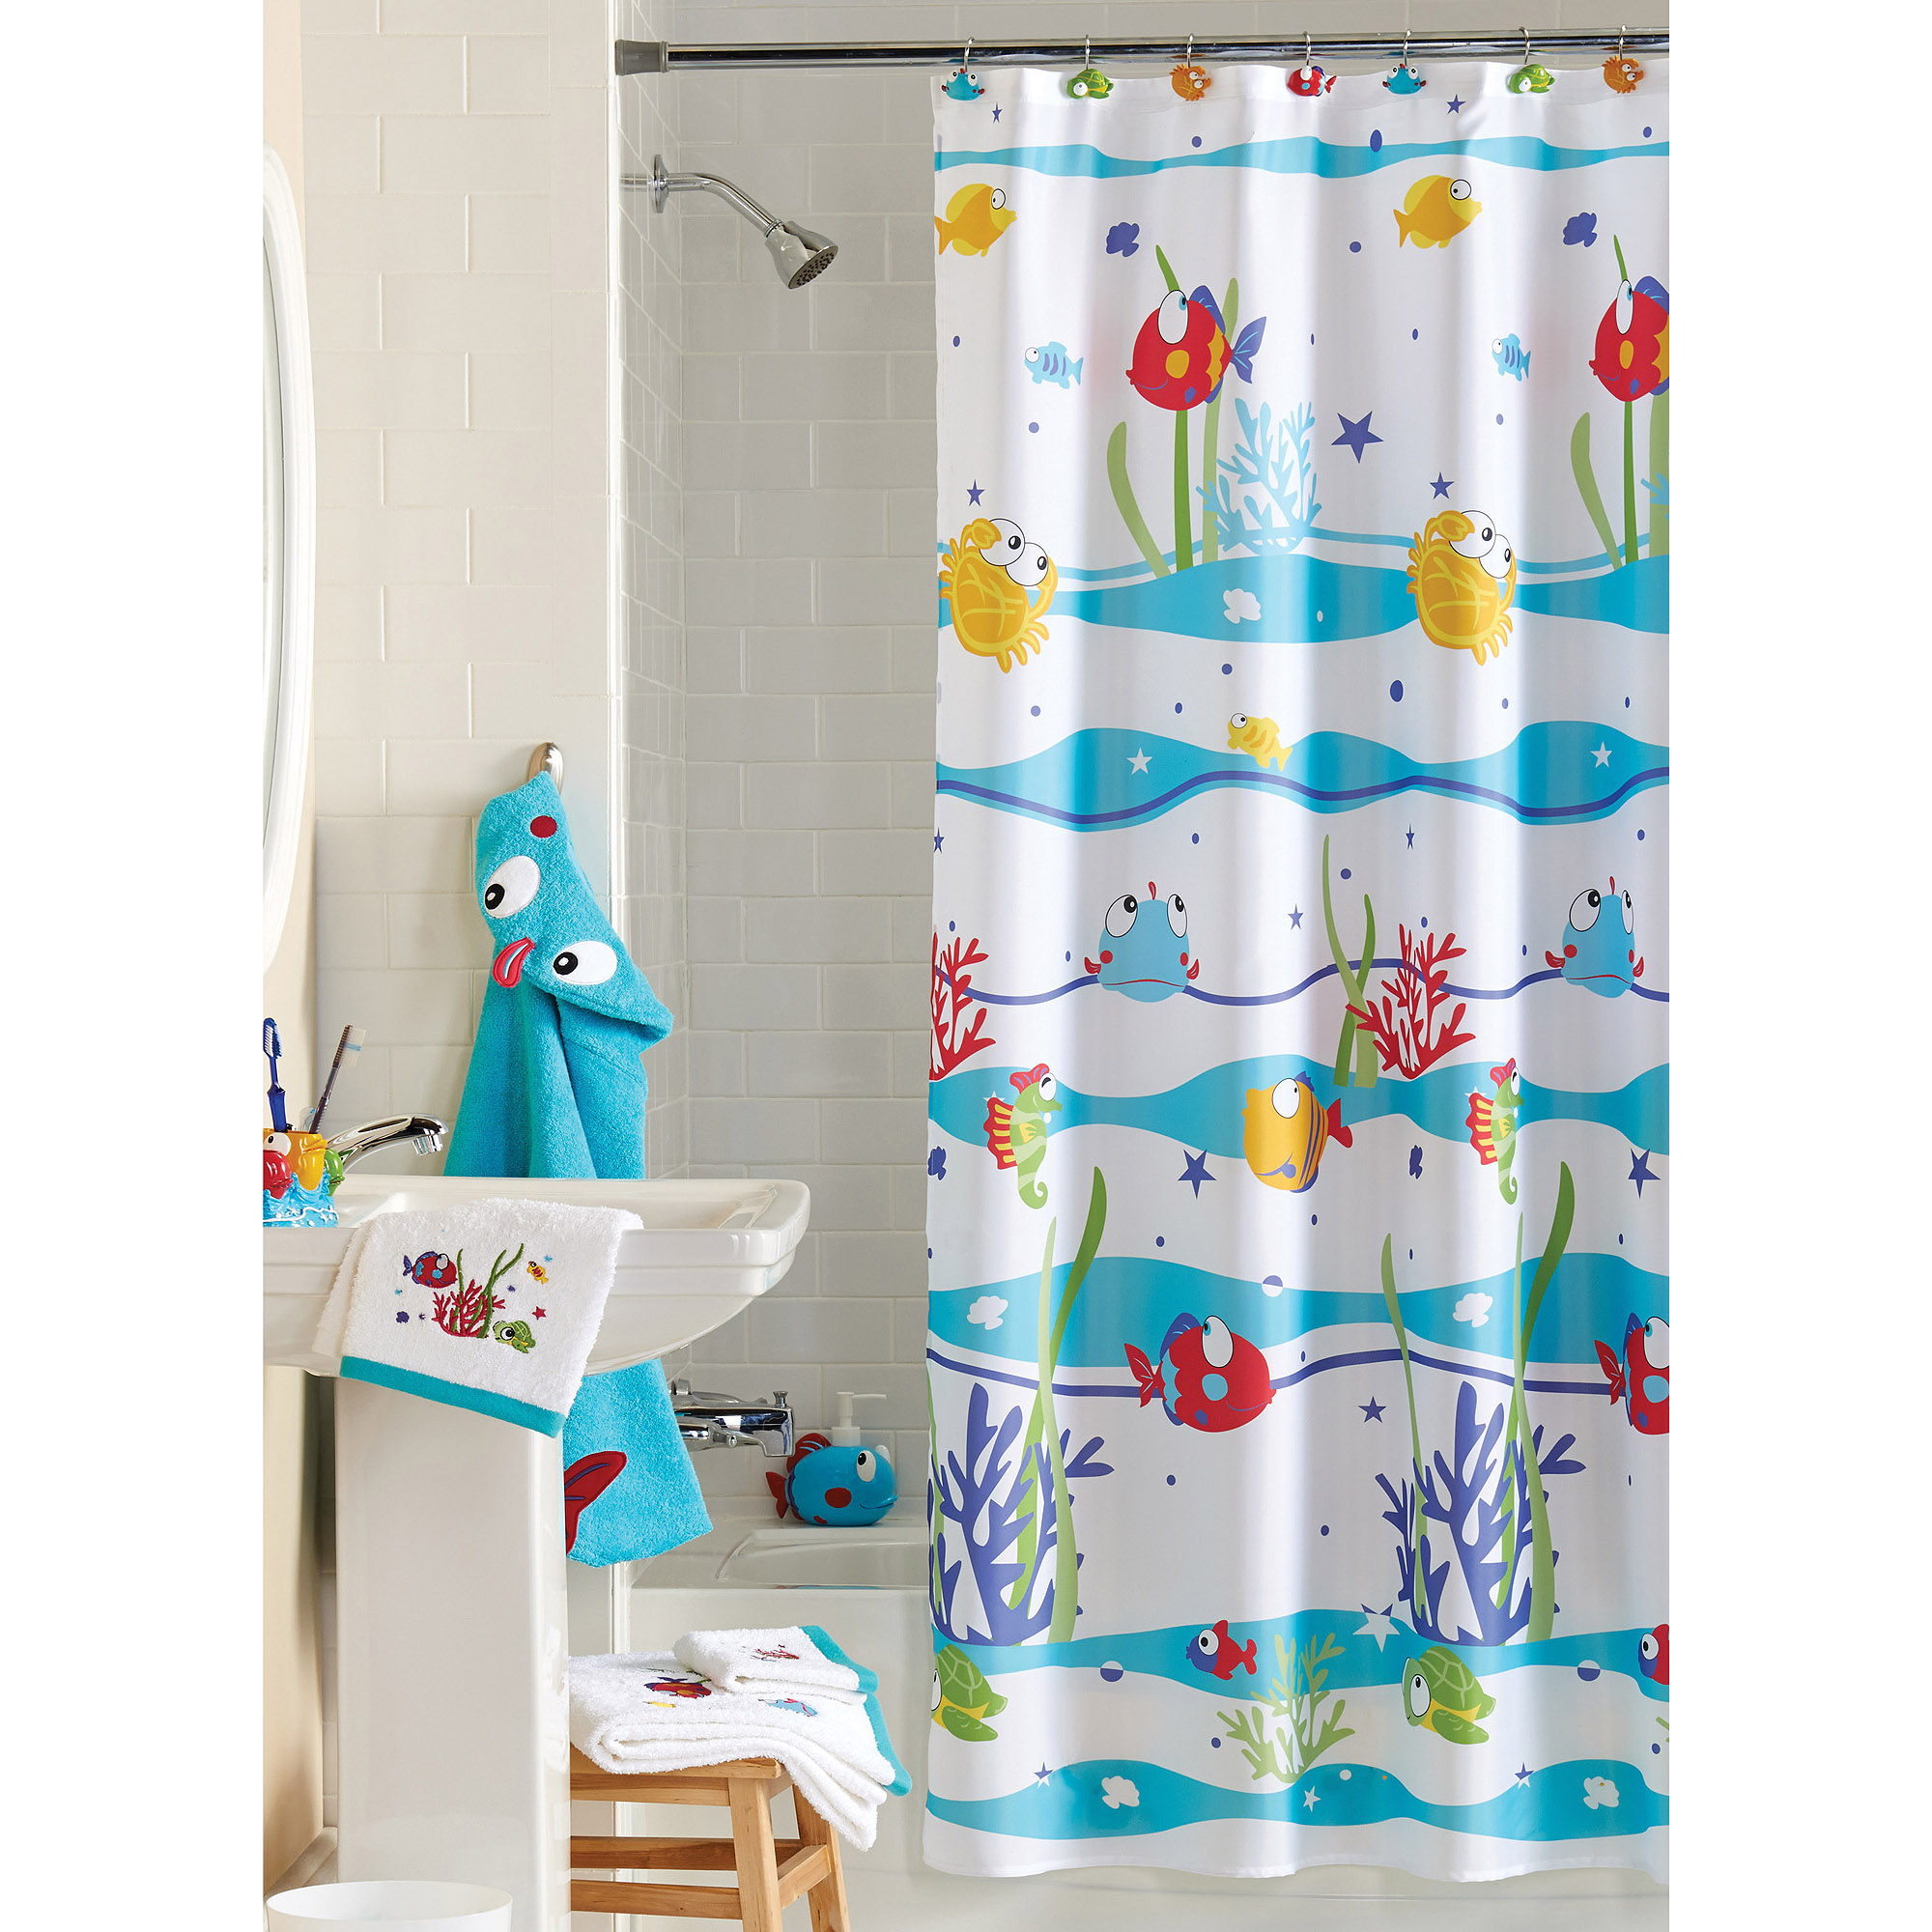 Bathroom curtains from walmart - Mainstays Something S Fishy Shower Curtain